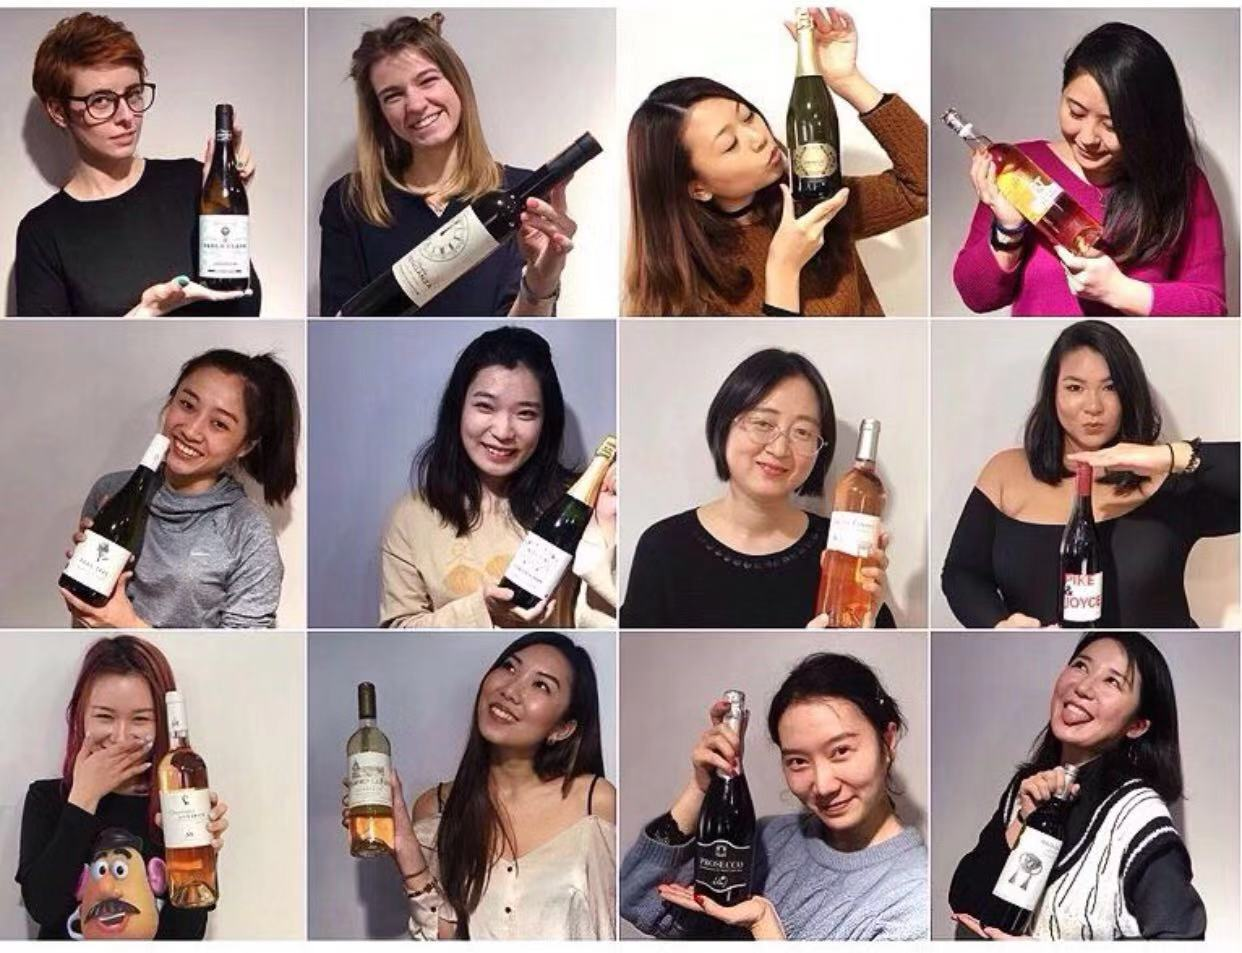 Limited Edition Wine & Cocktail Packages for International Women's Day, Available Now!